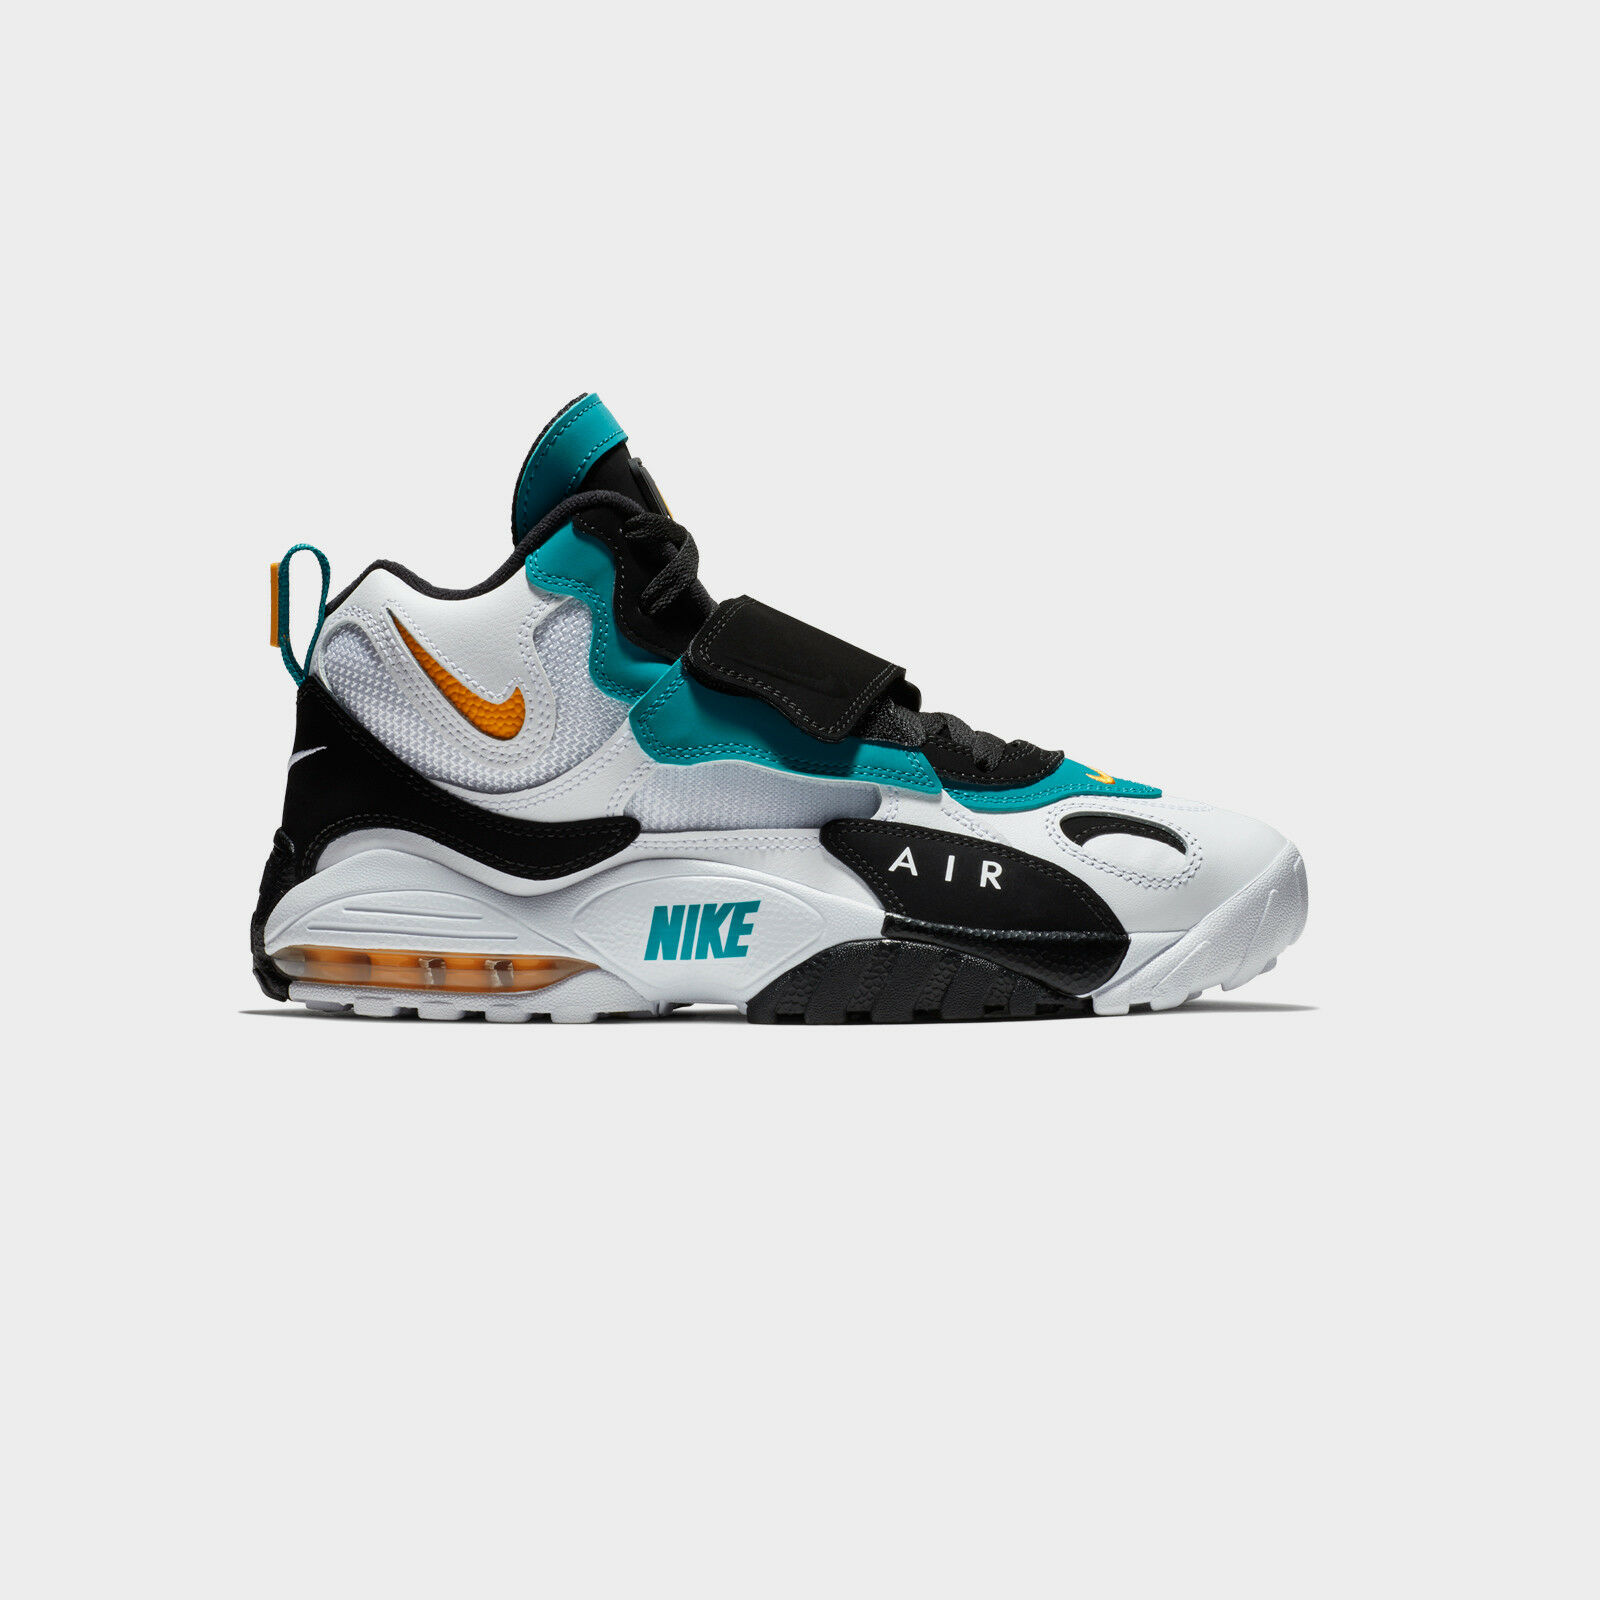 Nike Air Max Speed Turf sz 12.5 Miami Dolphins Teal orange Dan Marino 525225-100